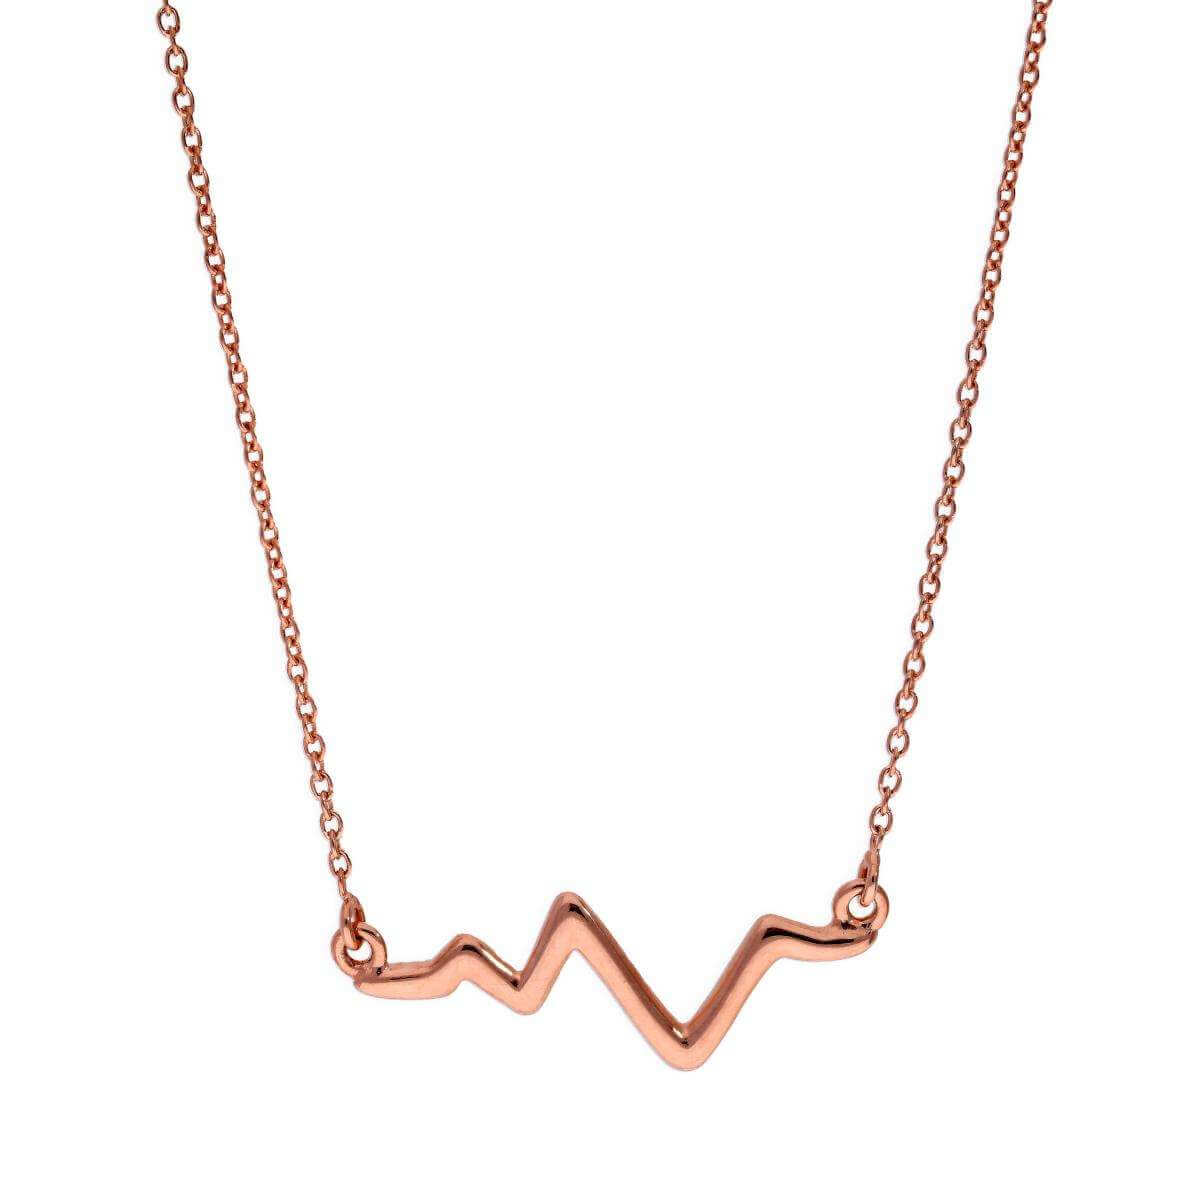 Rose Gold Plated Sterling Silver Heartbeat Pendant on 18 Inch Chain